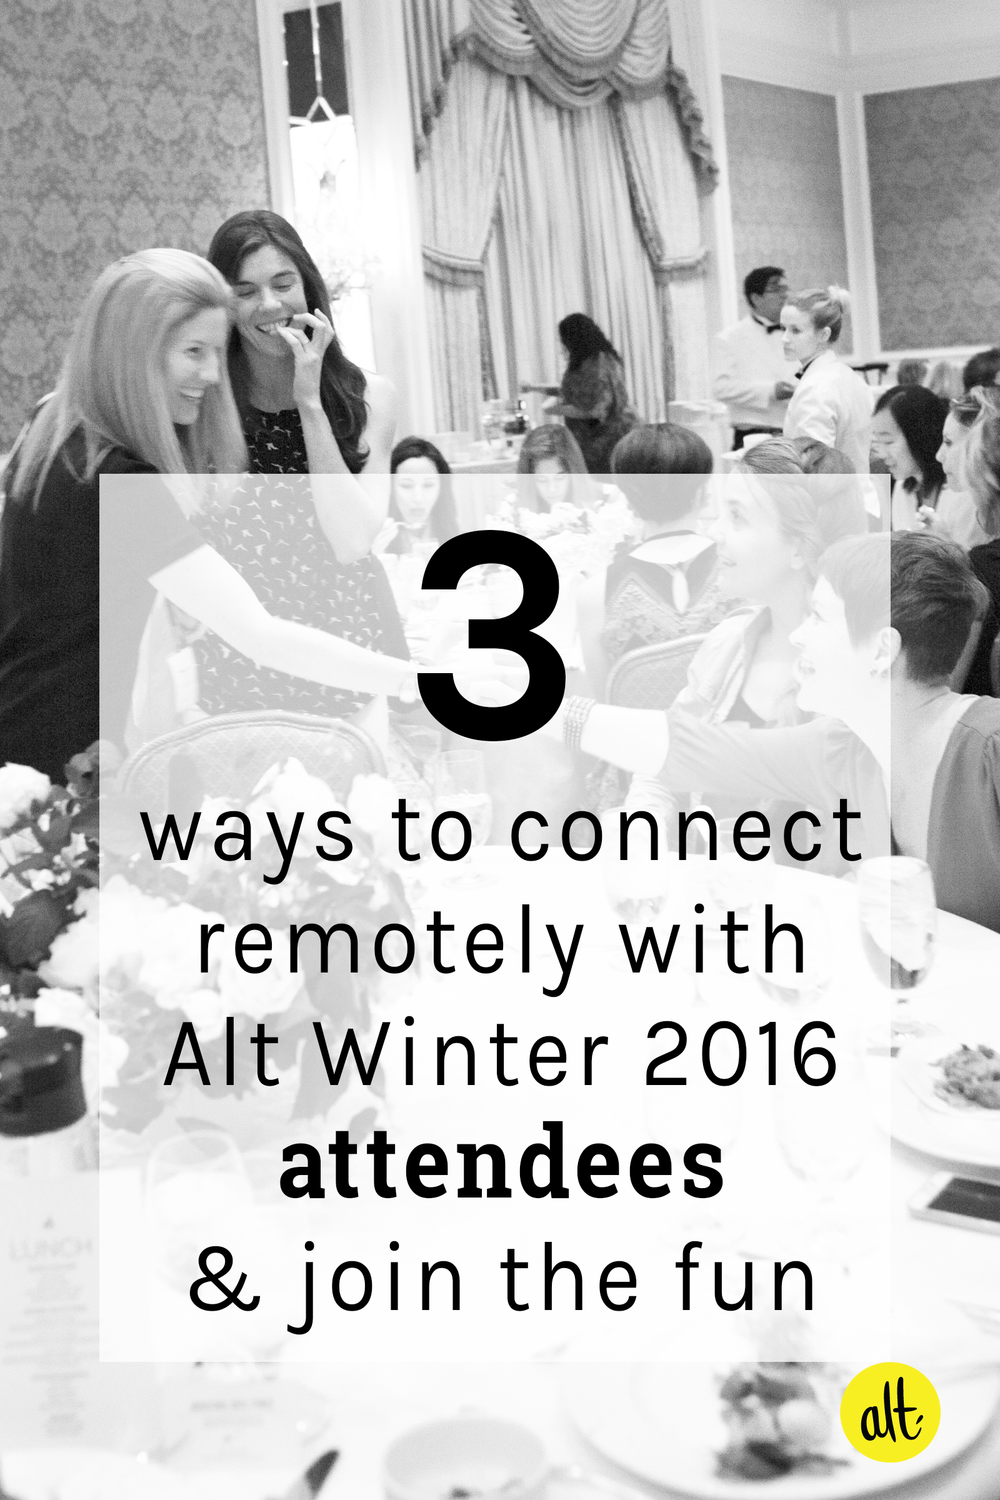 Three ways you can hear the latest Alt Summit news and interact with Alt Winter 2016 attendees.